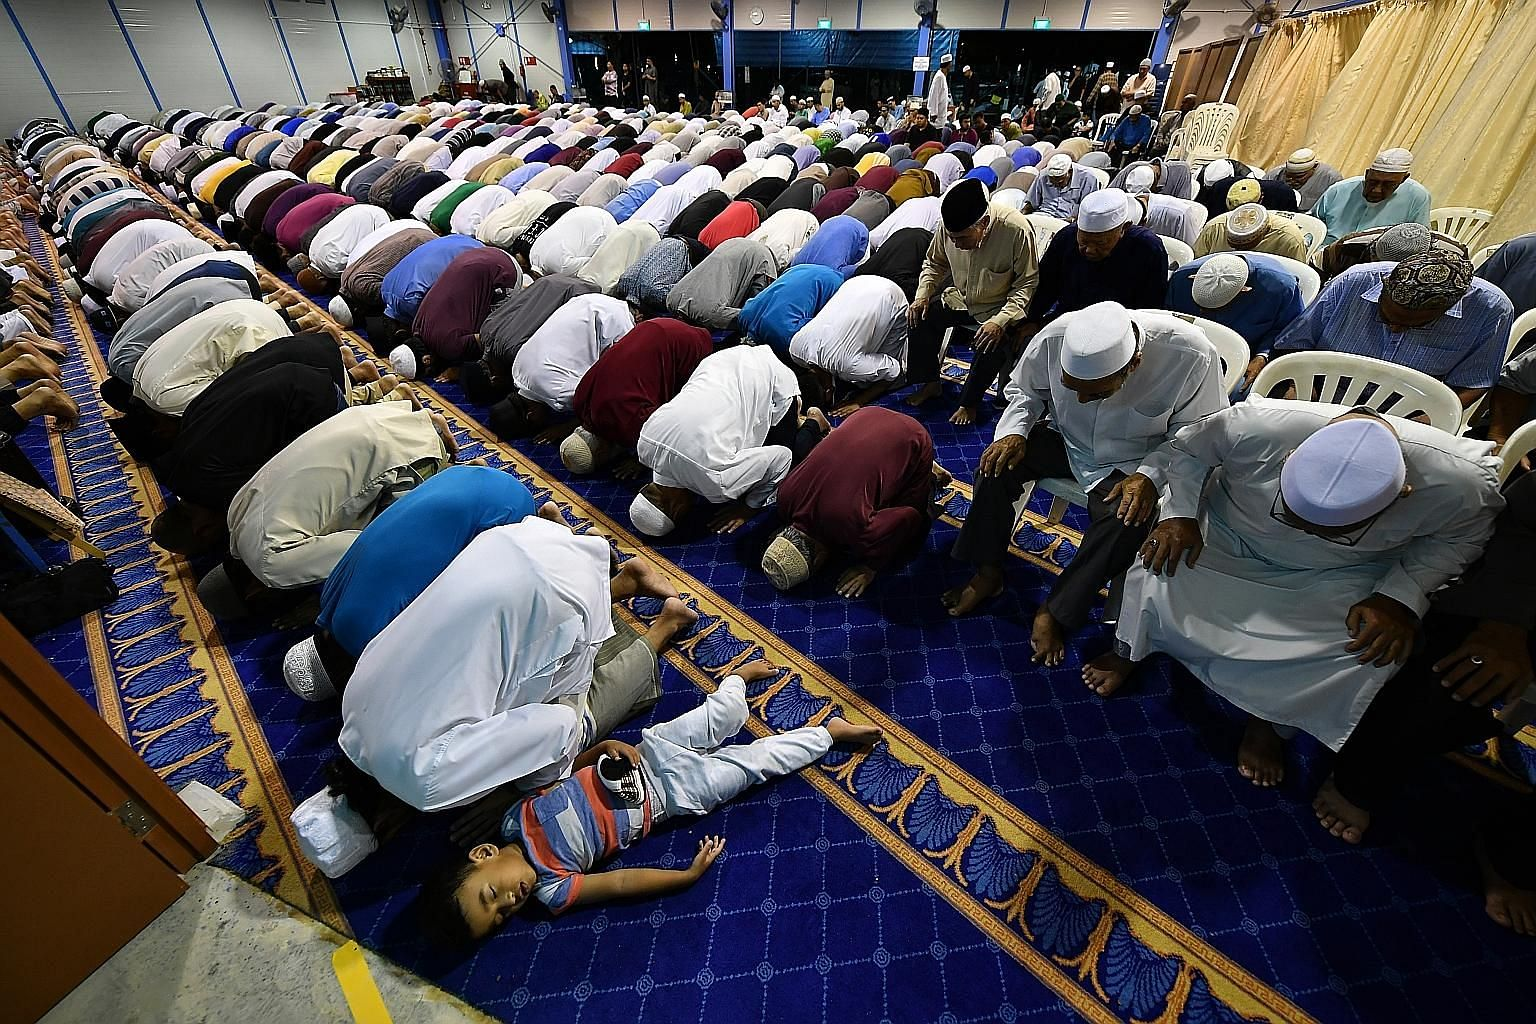 Muslims performing special evening prayers yesterday, the first night of the holy fasting month of Ramadan, at the temporary site of Masjid Darul Ghufran in Tampines. Muslims in Singapore will begin fasting today and celebrate Hari Raya Puasa on June